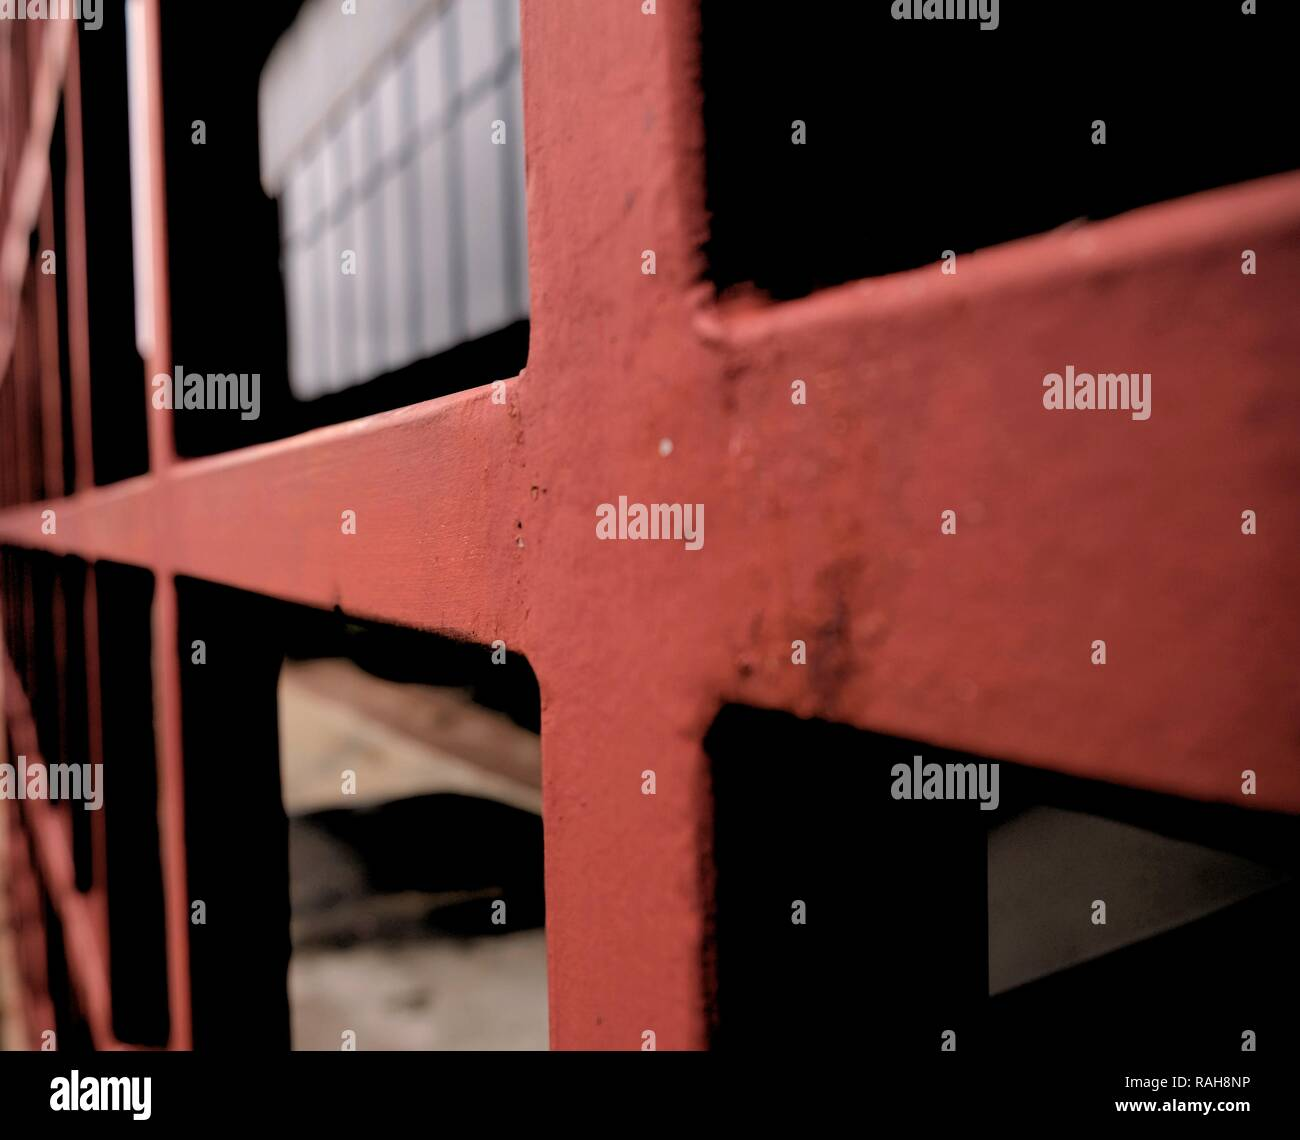 Close-up of a red metal square pattern; exterior design element at an office building. - Stock Image